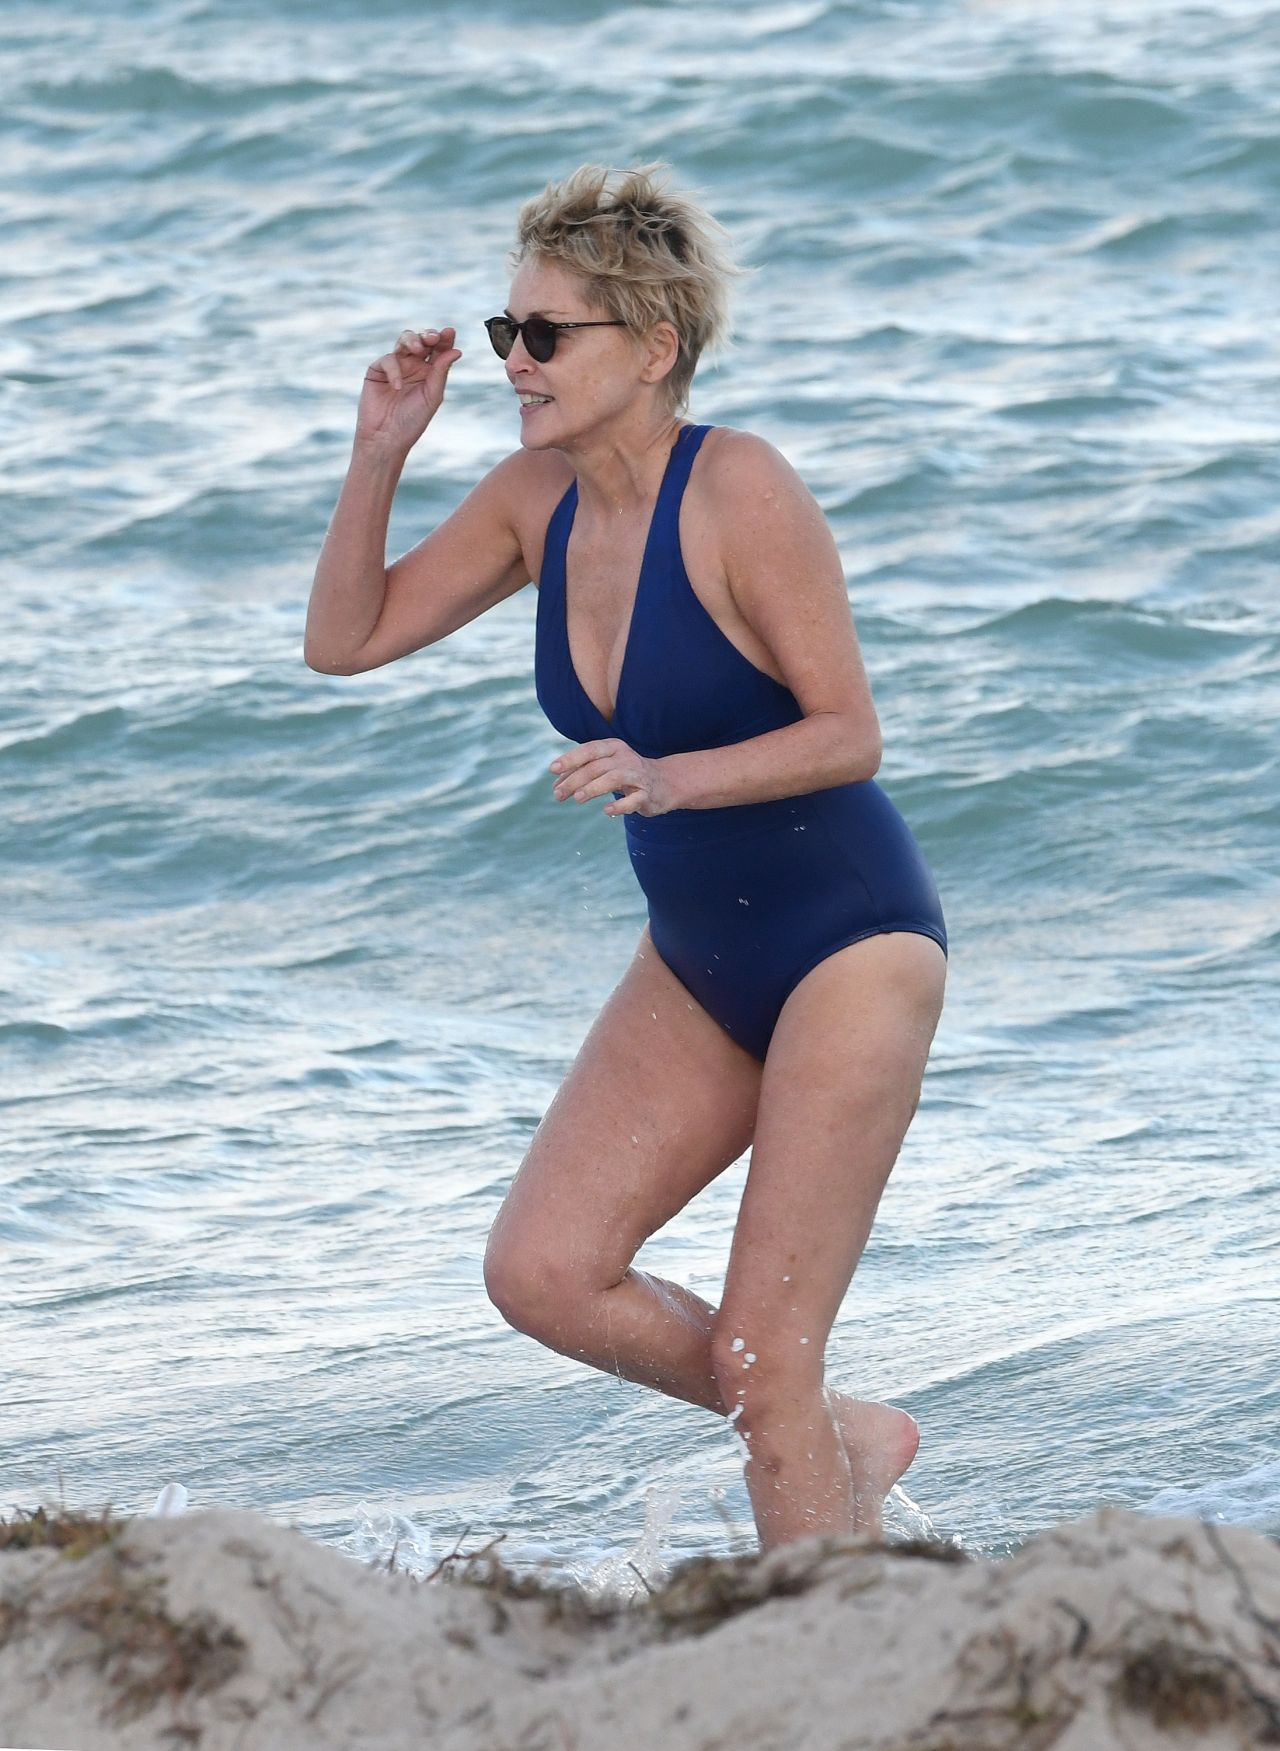 Sharon Stone in Bikini Top with her boyfriend at the beach in Miami Pic 27 of 35